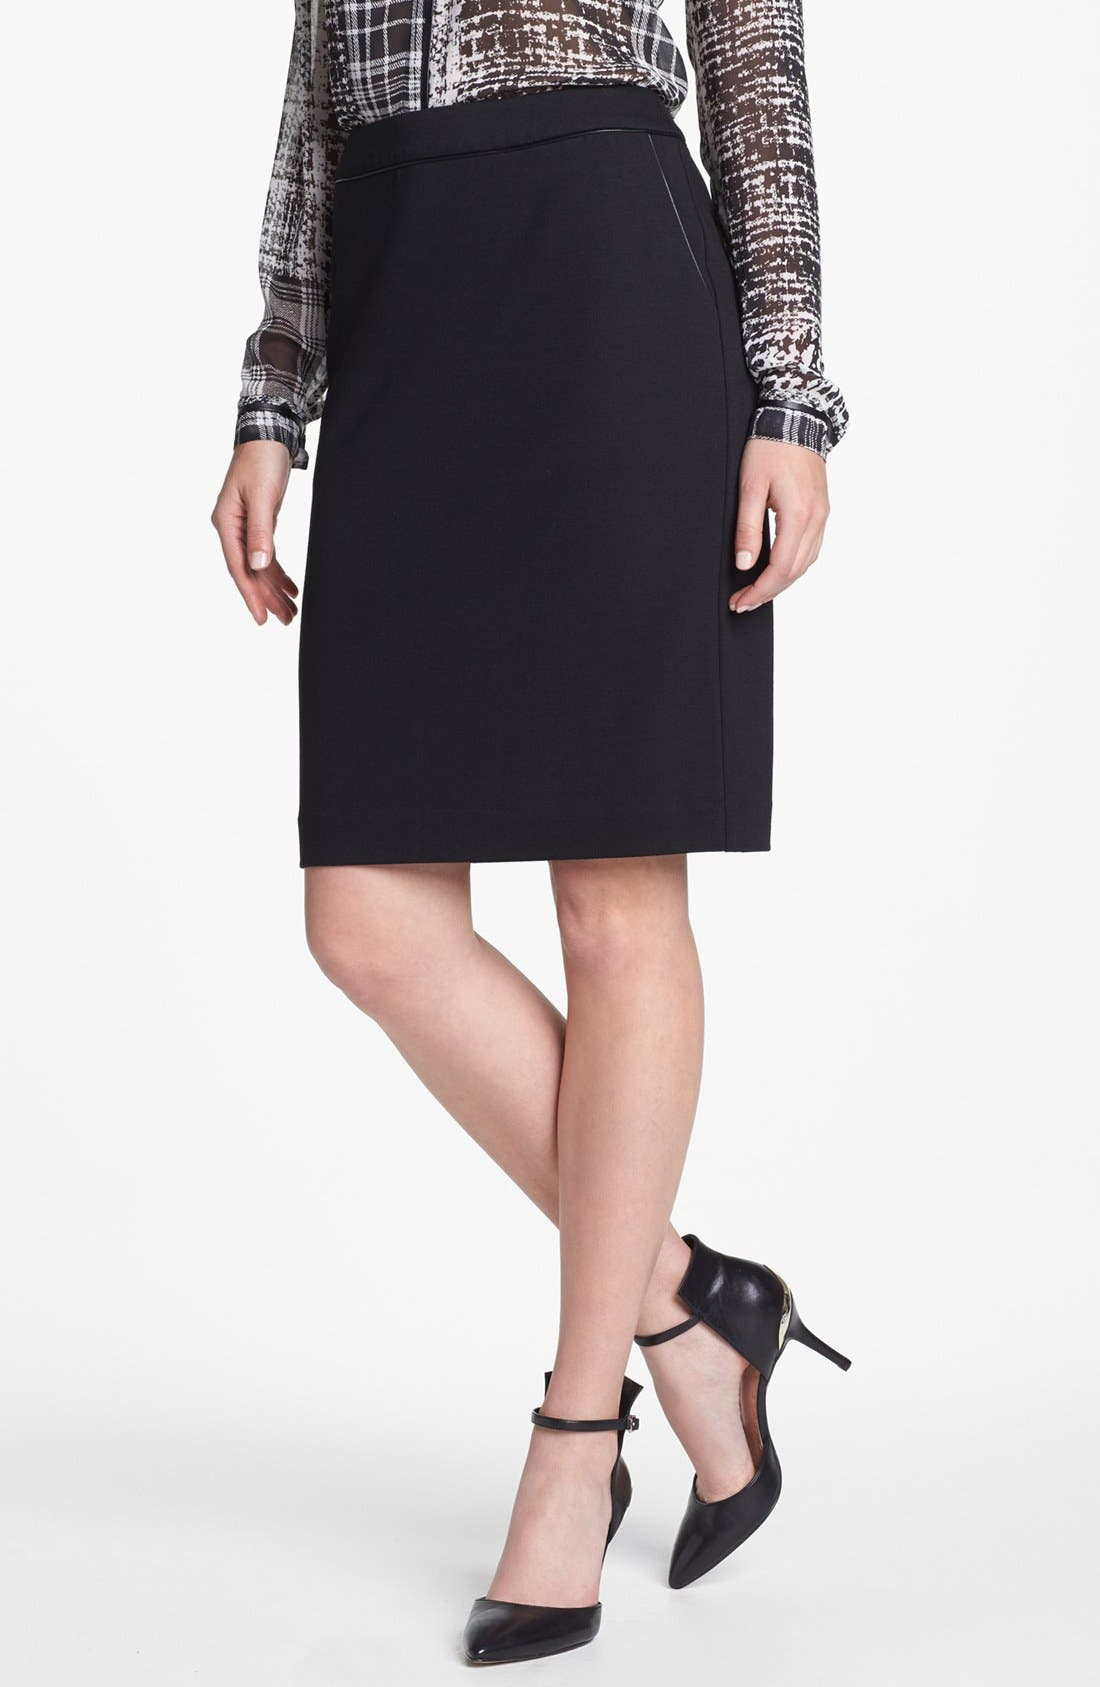 Alternate Image 1 Selected - Vince Camuto Faux Leather Trim Pencil Skirt (Nordstrom Exclusive)